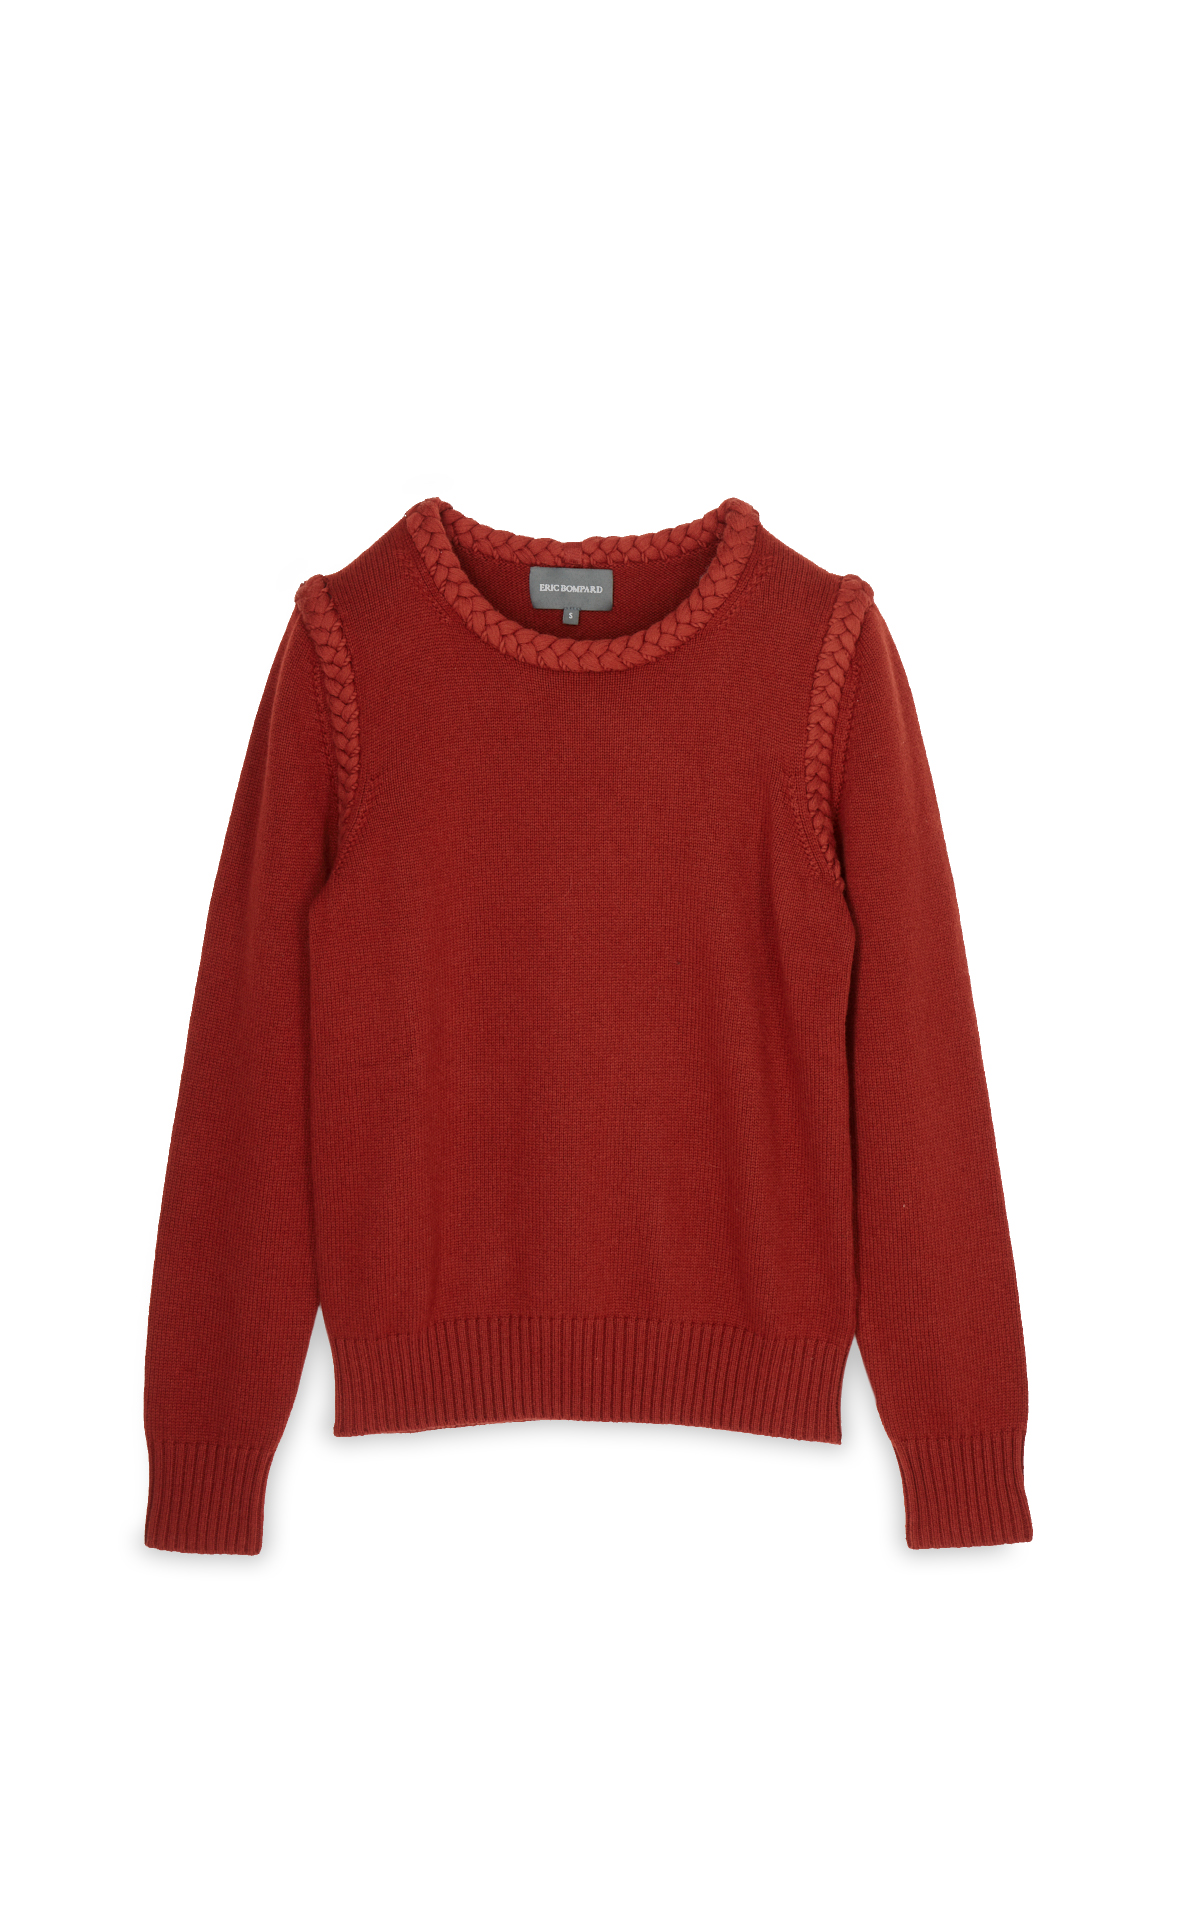 La Vallée Village Eric Bompard Jumper with braided detailing